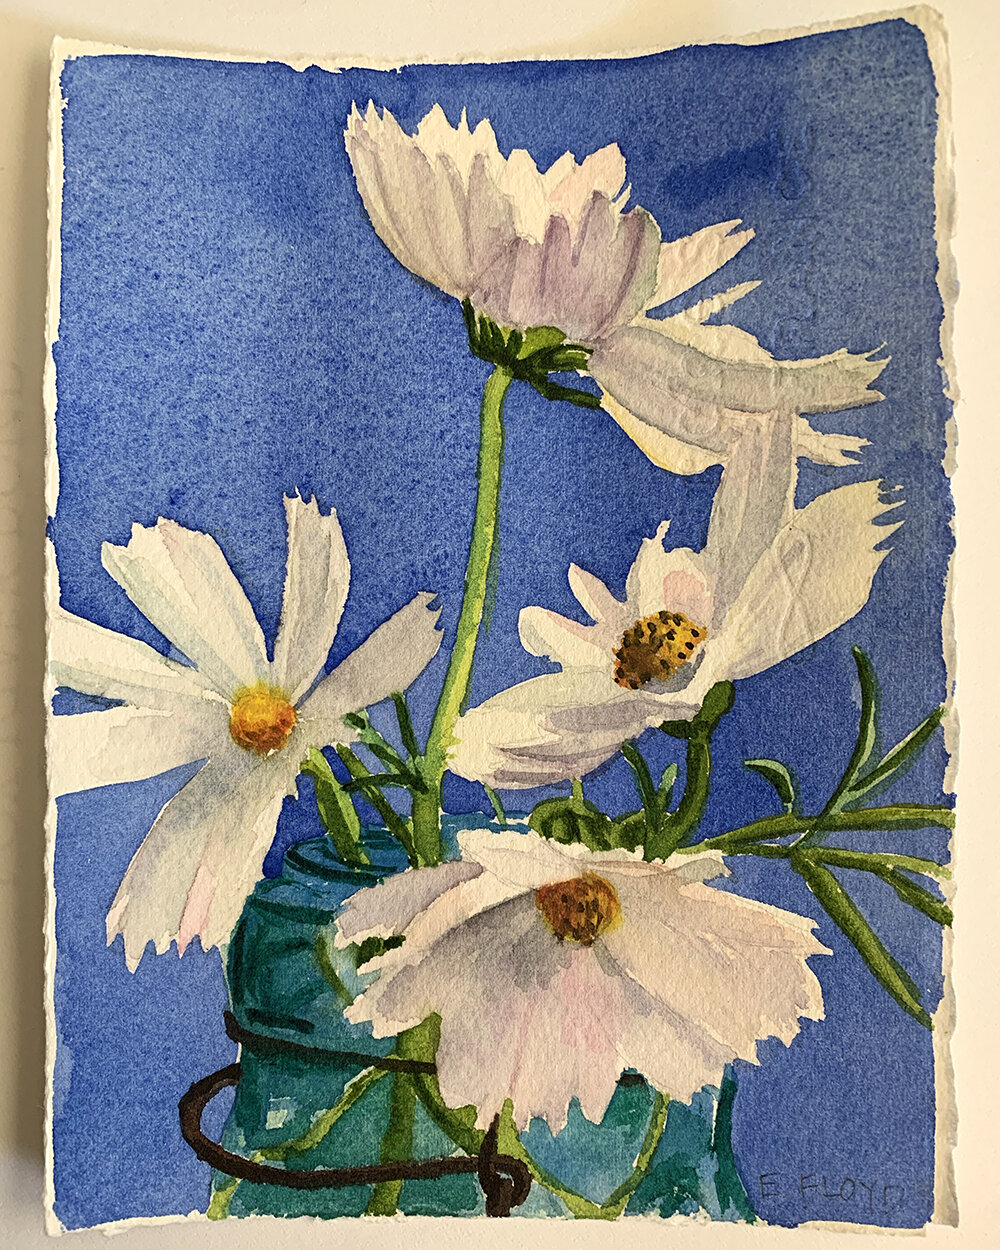 Day 231, August 19, 2019: White Cosmos on Blue Background (SOLD). This was my first successful piece after the surgery.